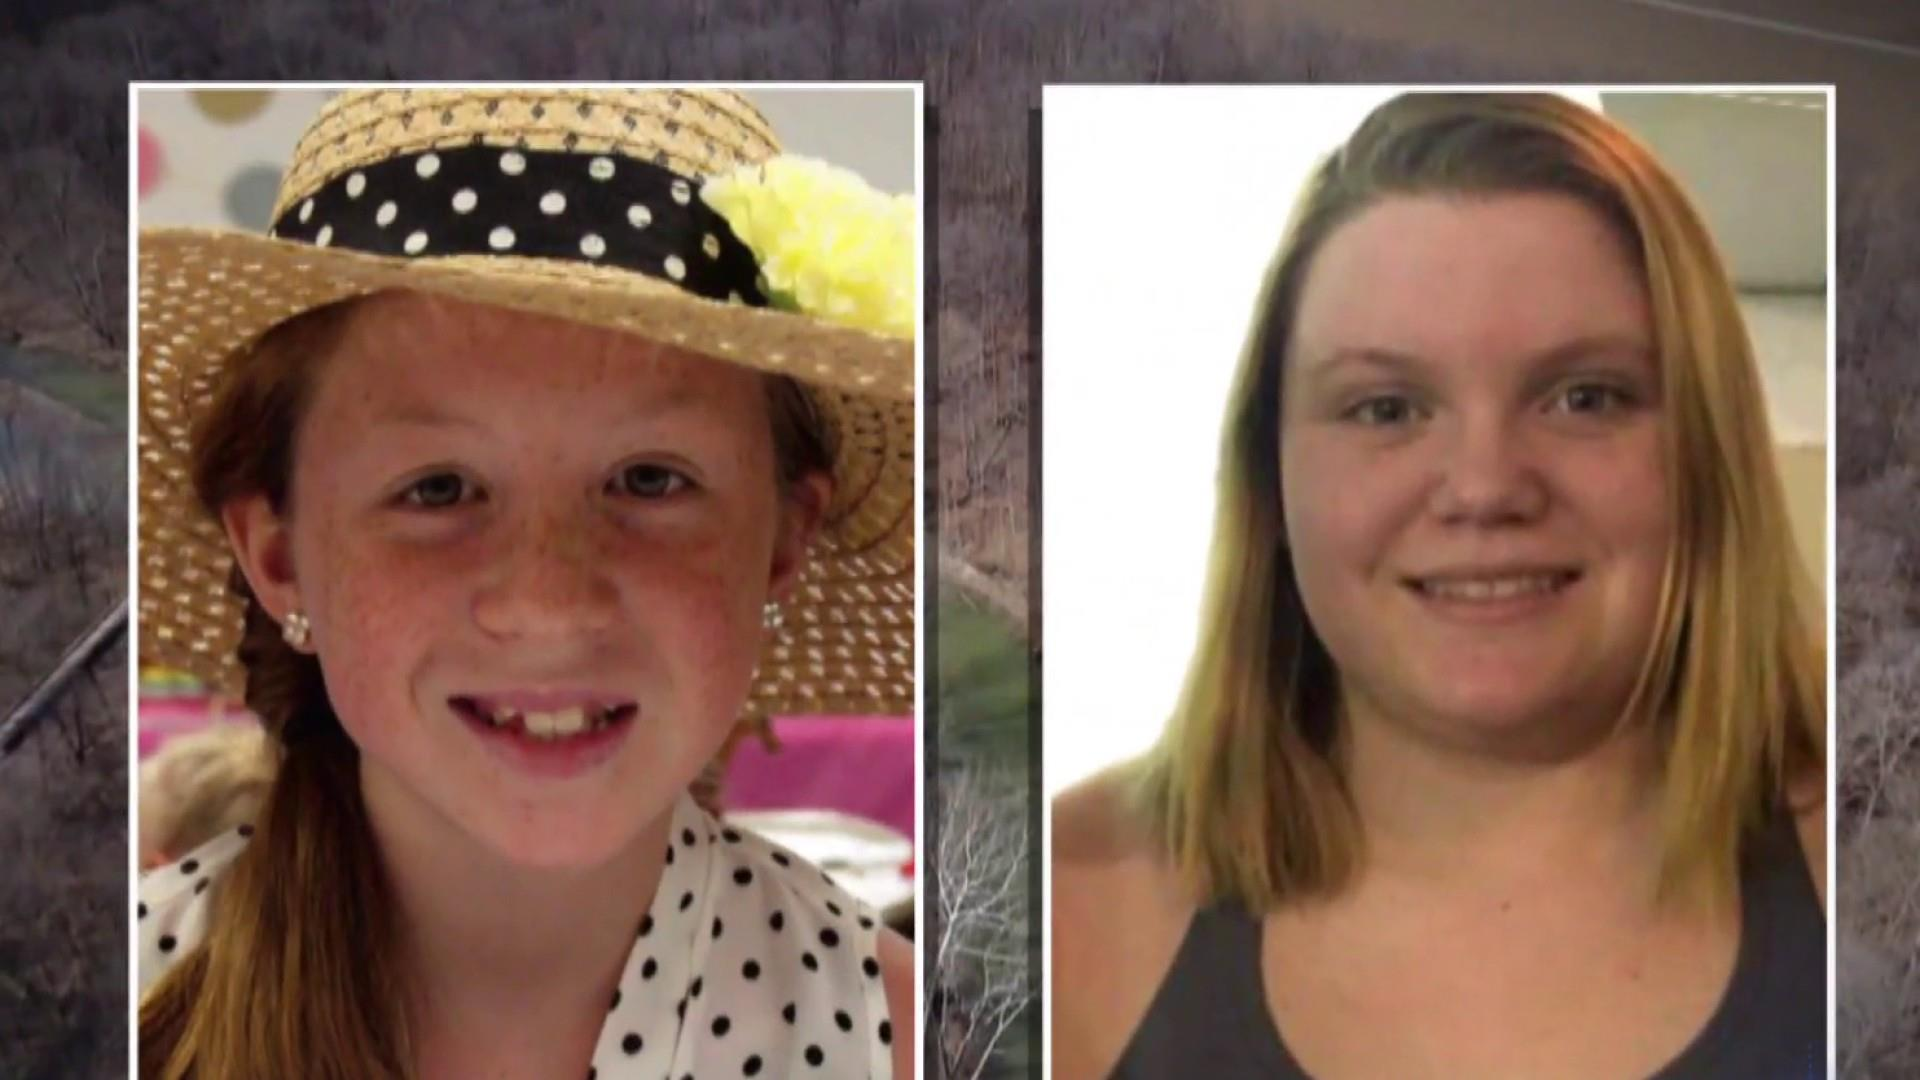 Delphi, Indiana, murders: Suspect in death of teens likely has close